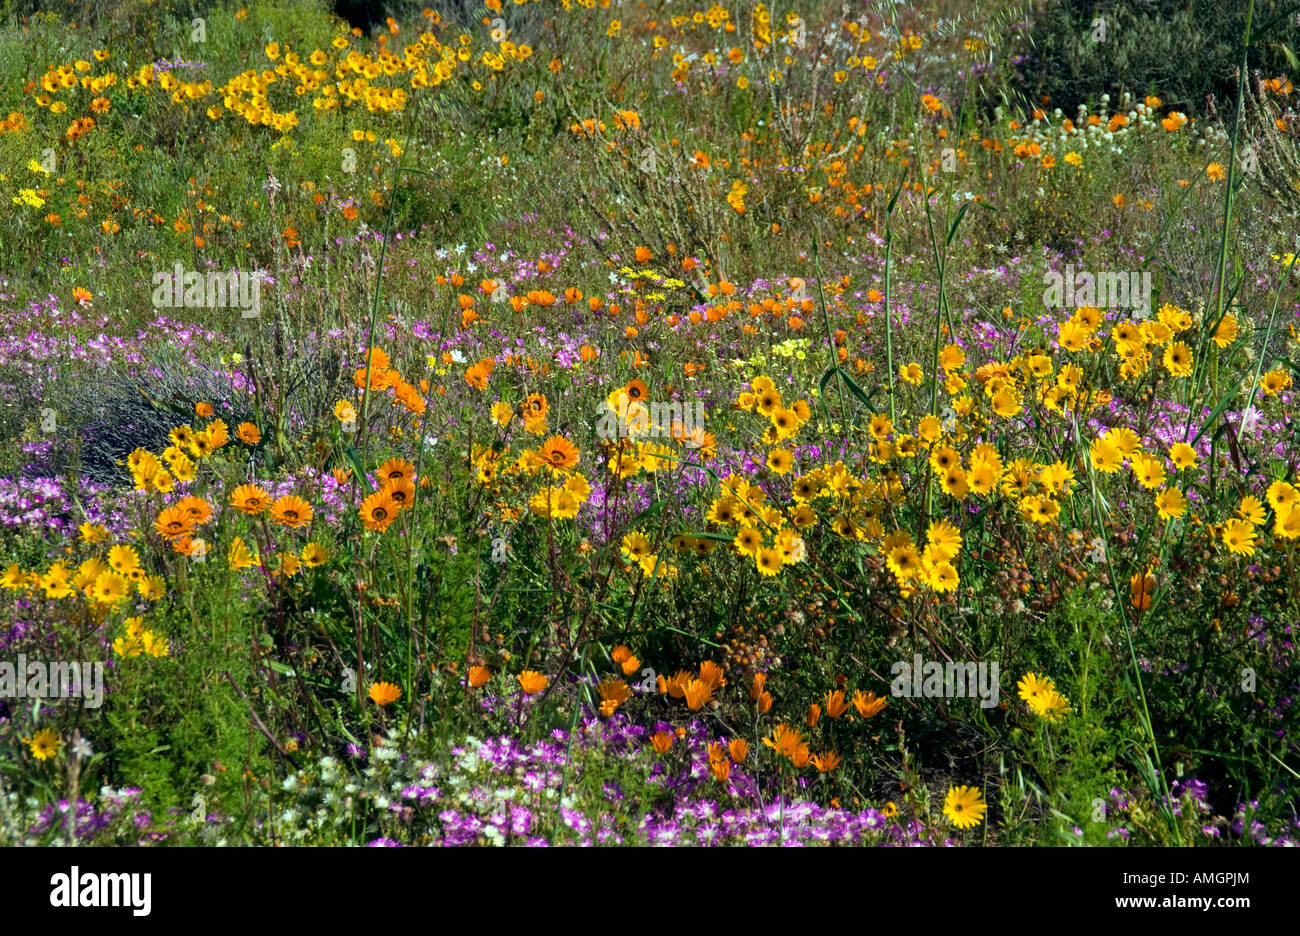 Namaqualand spring wildflowers near Kamieskroon Northern Cape South Africa - Stock Image